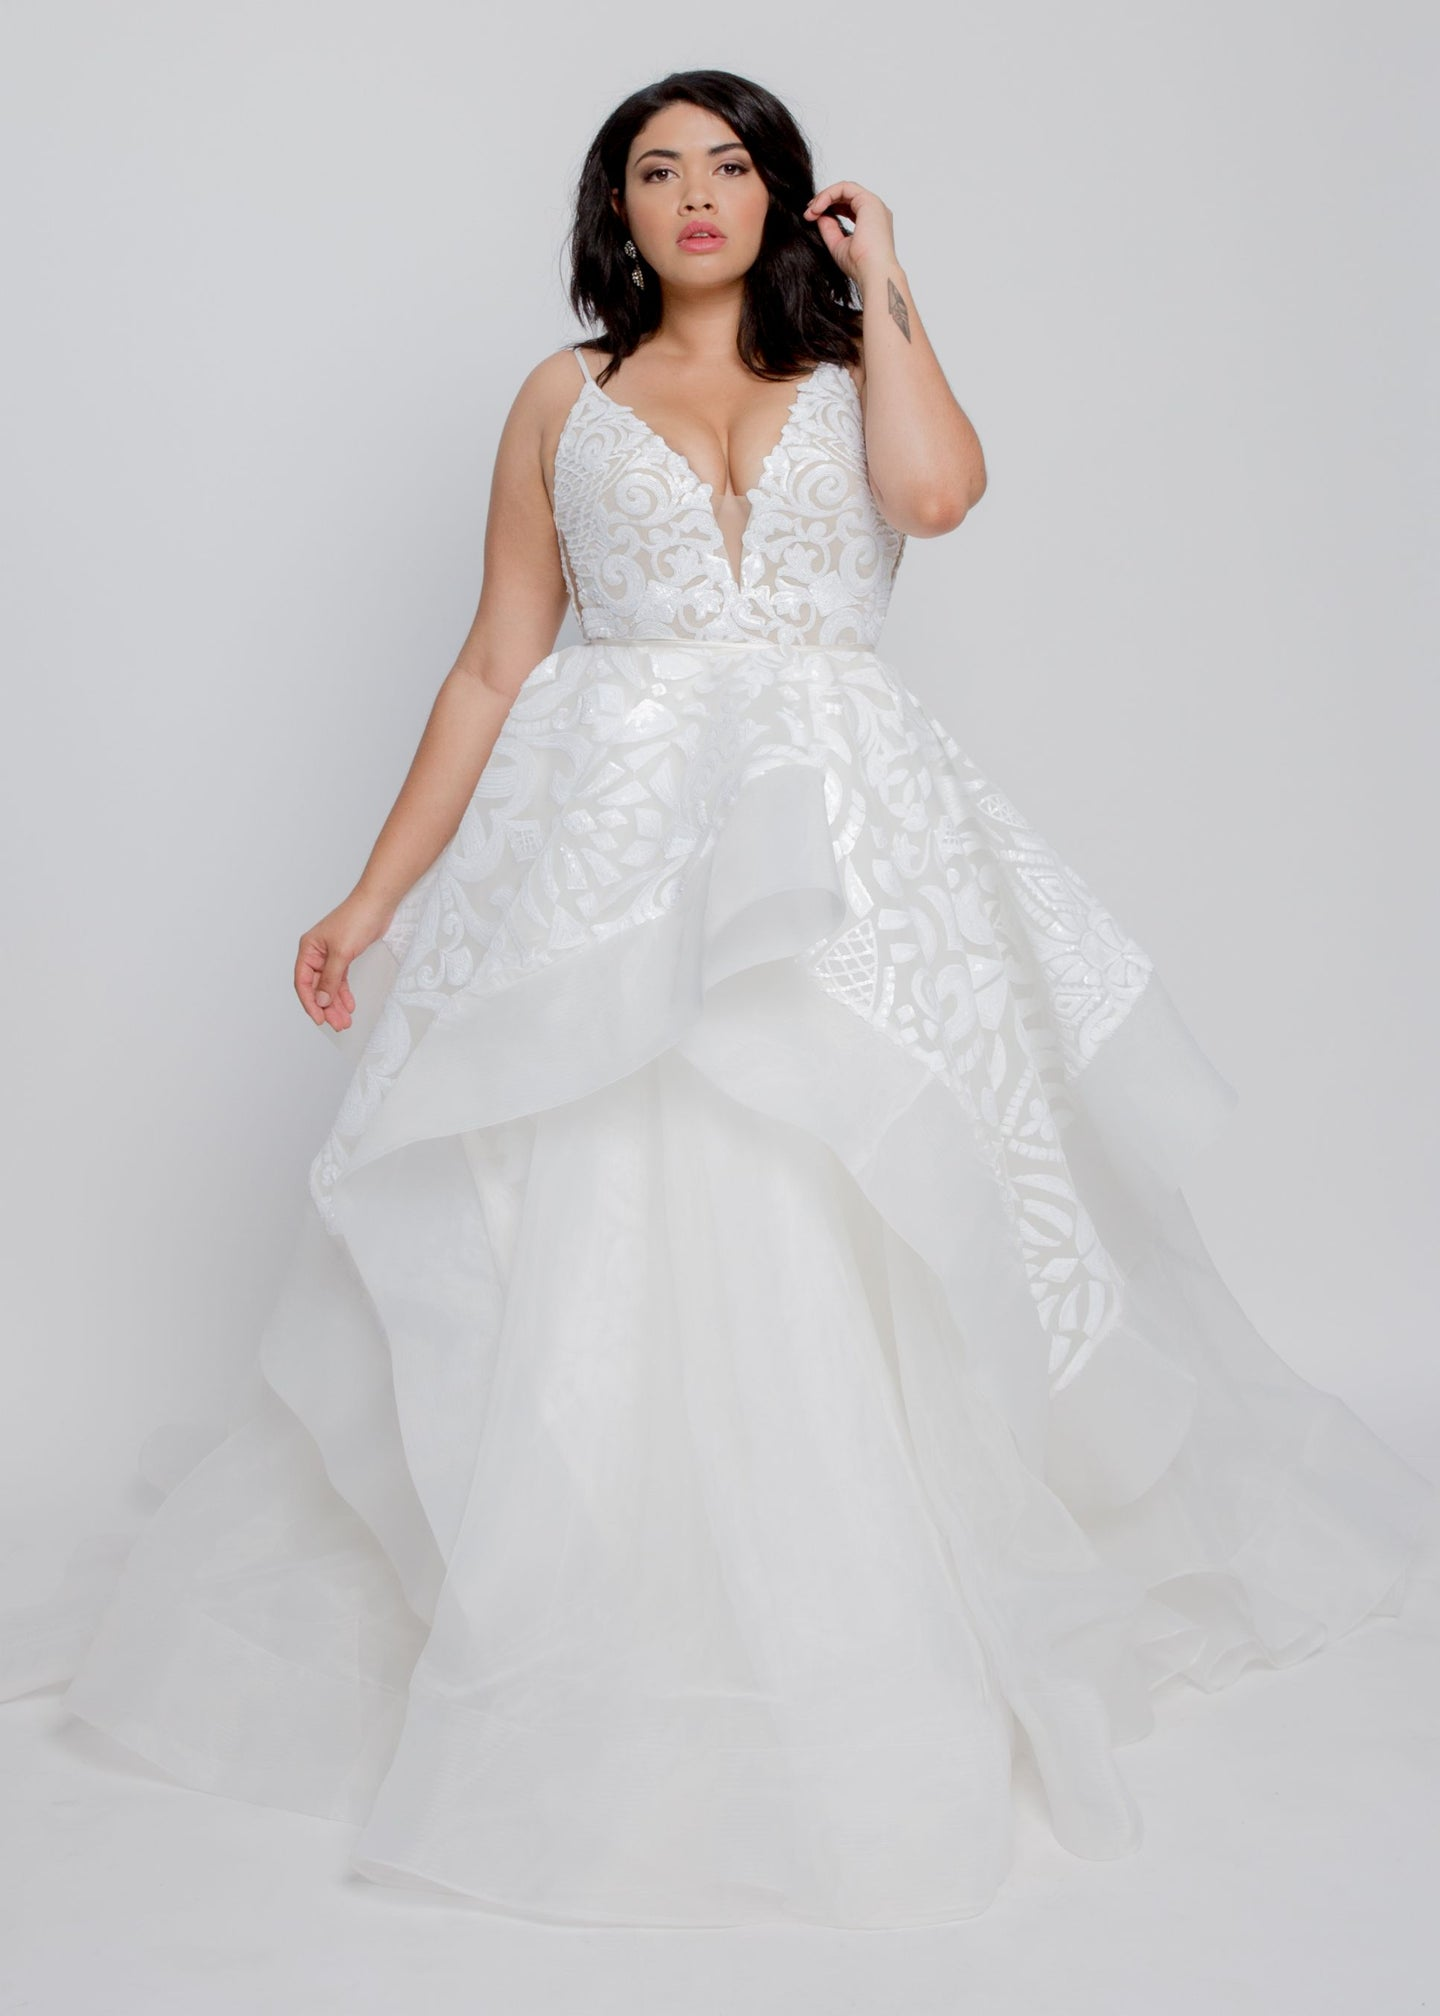 Gorgeous bridal gowns for all body shapes: plus size, curvy, or petite brides. Try on our wedding dresses at home. Size 0-30. Comfortable. Convenient. Fun. Lace or satin. Mermaid or A-line. The alluring and beautiful Courtney Gown features a plunging v-neck elongates the neck while the ball gown skirt creates a mesmerizing look. This intricately detailed sequin-embellished dress is a unique, on-trend ball gown that you will admire long after your wedding day.